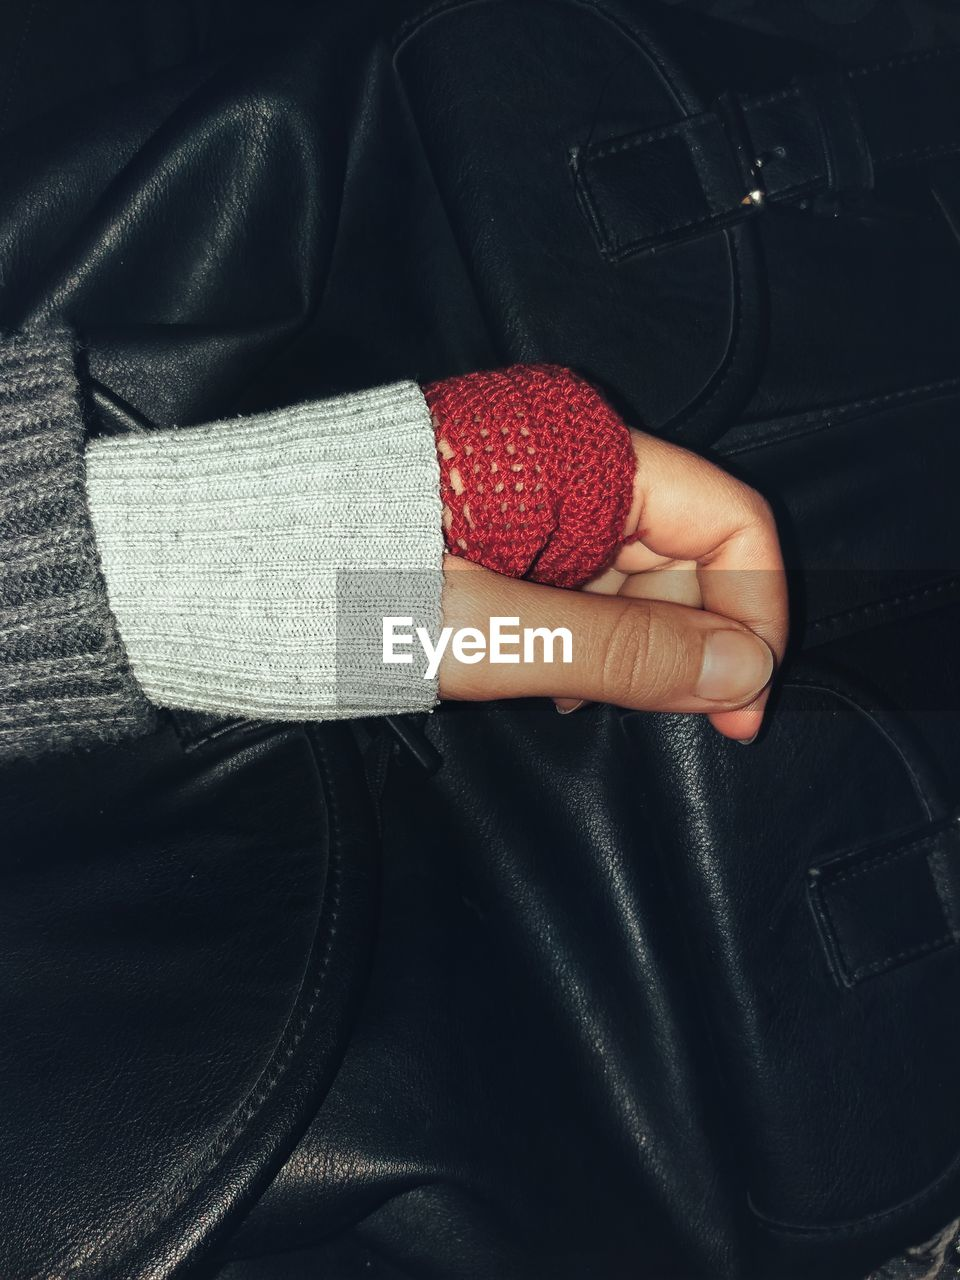 Close-up high angle view of person wearing warm clothing